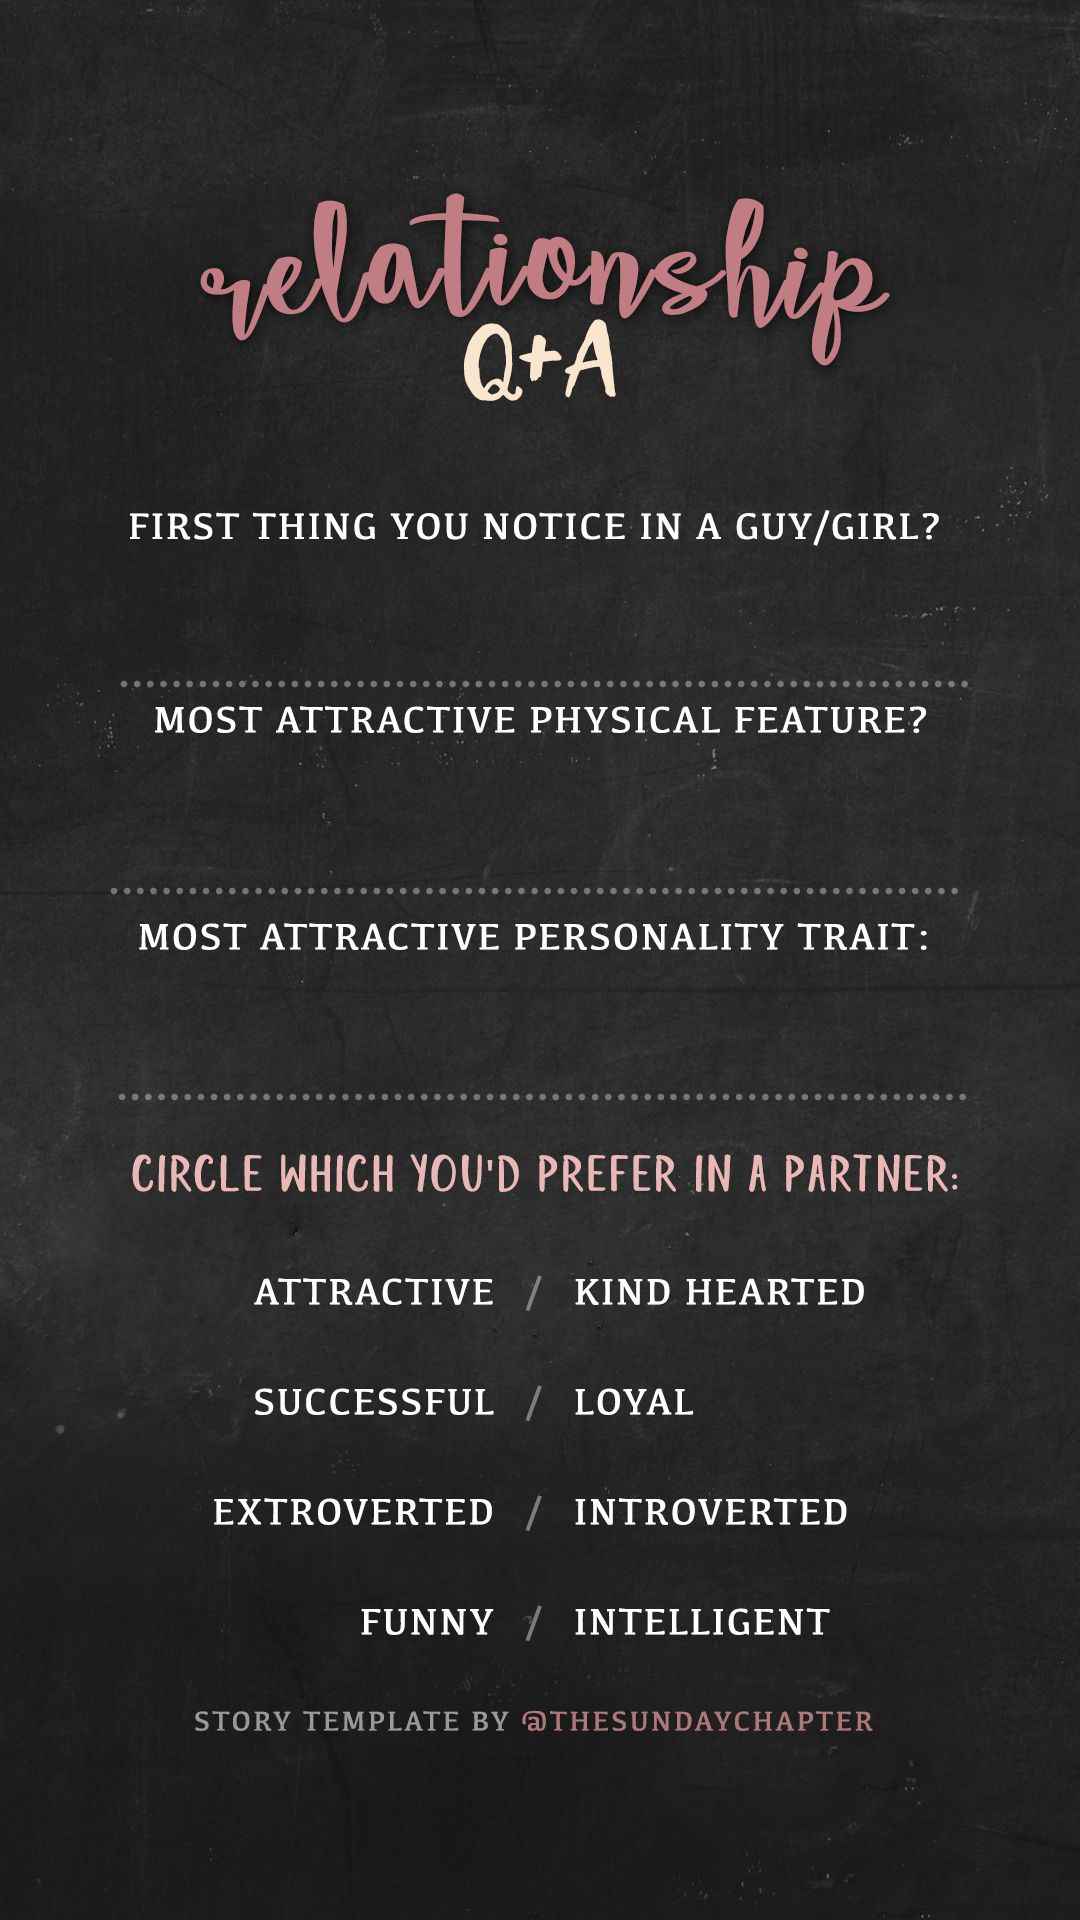 Relationship Instagram story template | templates | Pinterest ...